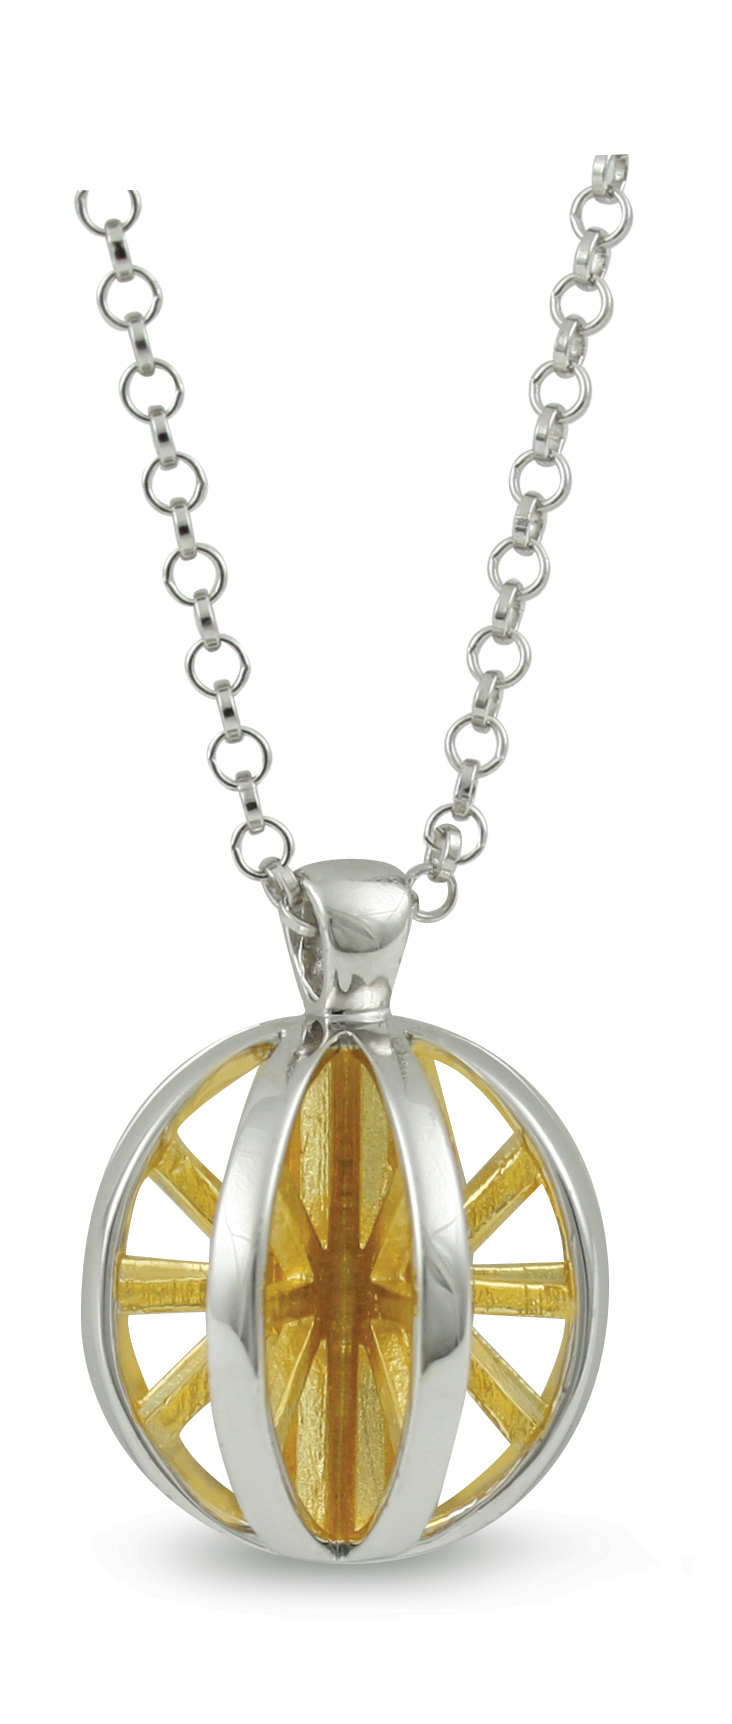 65695 - Sphere of Life 'Good Morning Sunshine' Pendant in Sterling Silver